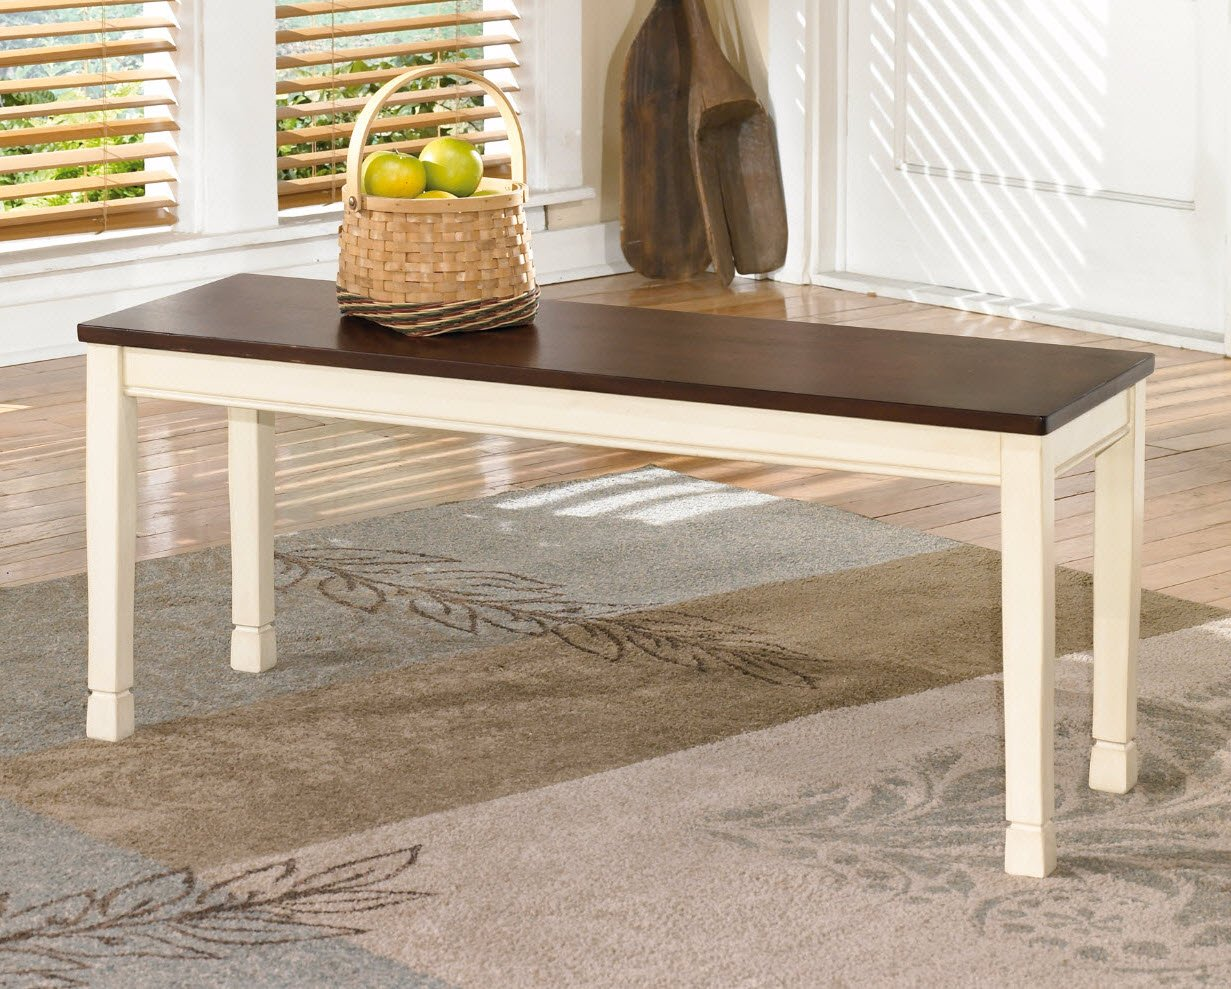 Amazon ashley furniture signature design whitesburg large amazon ashley furniture signature design whitesburg large dining bench rectangular vintage casual browncottage white table benches geotapseo Image collections